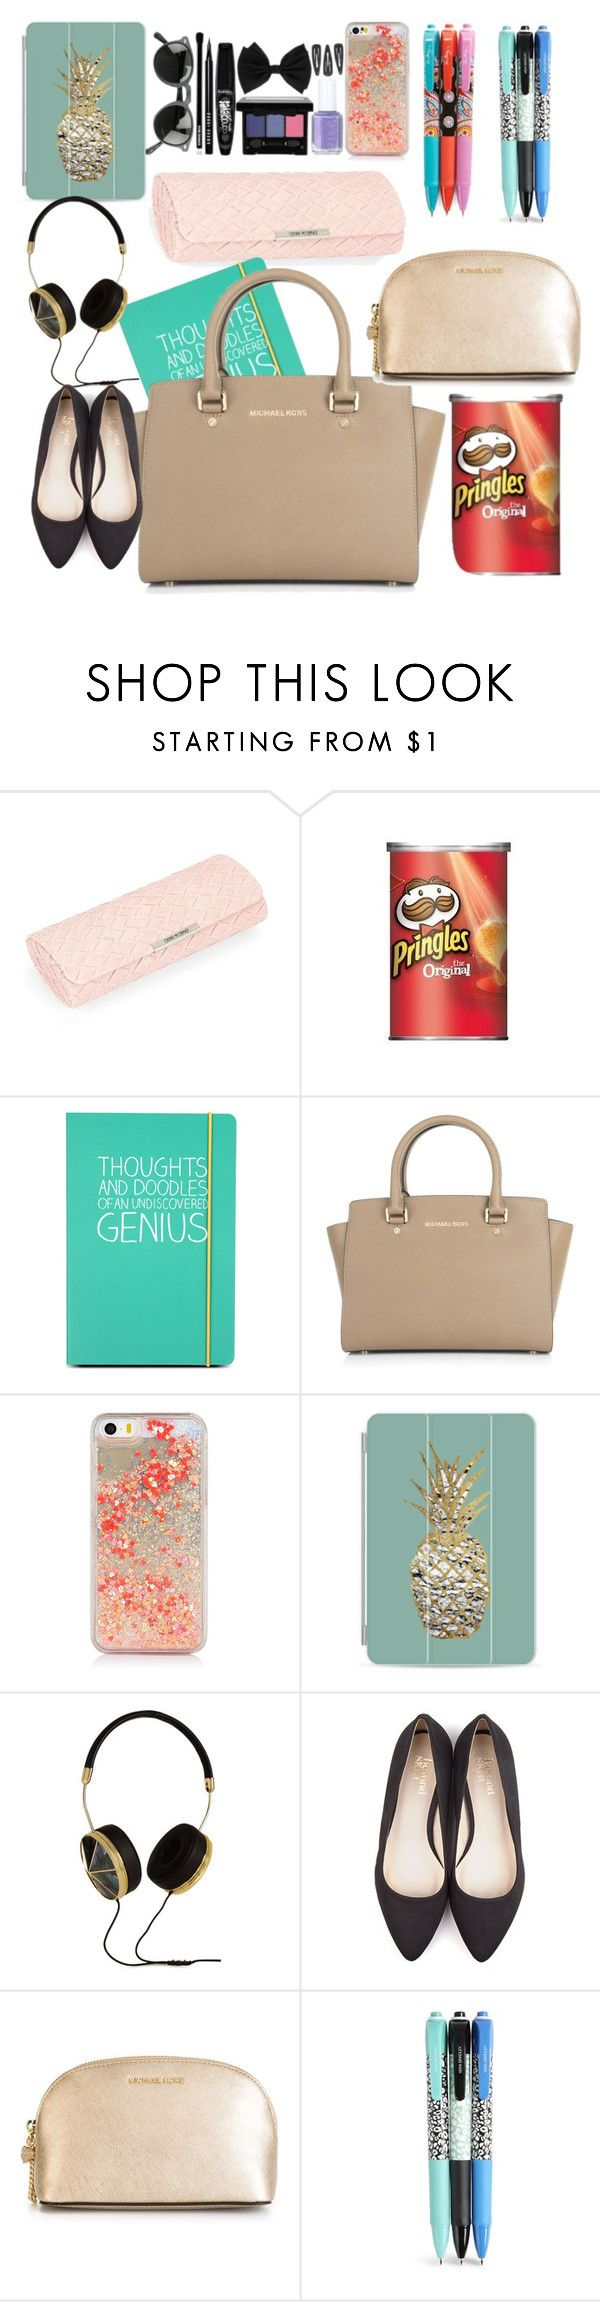 """""""What's in my purse"""" by ebony-kayla ❤ liked on Polyvore featuring beauty, Corinne McCormack, Happy Jackson, Michael Kors, Casetify, Frends, Beyond Skin, MICHAEL Michael Kors and Vera Bradley"""